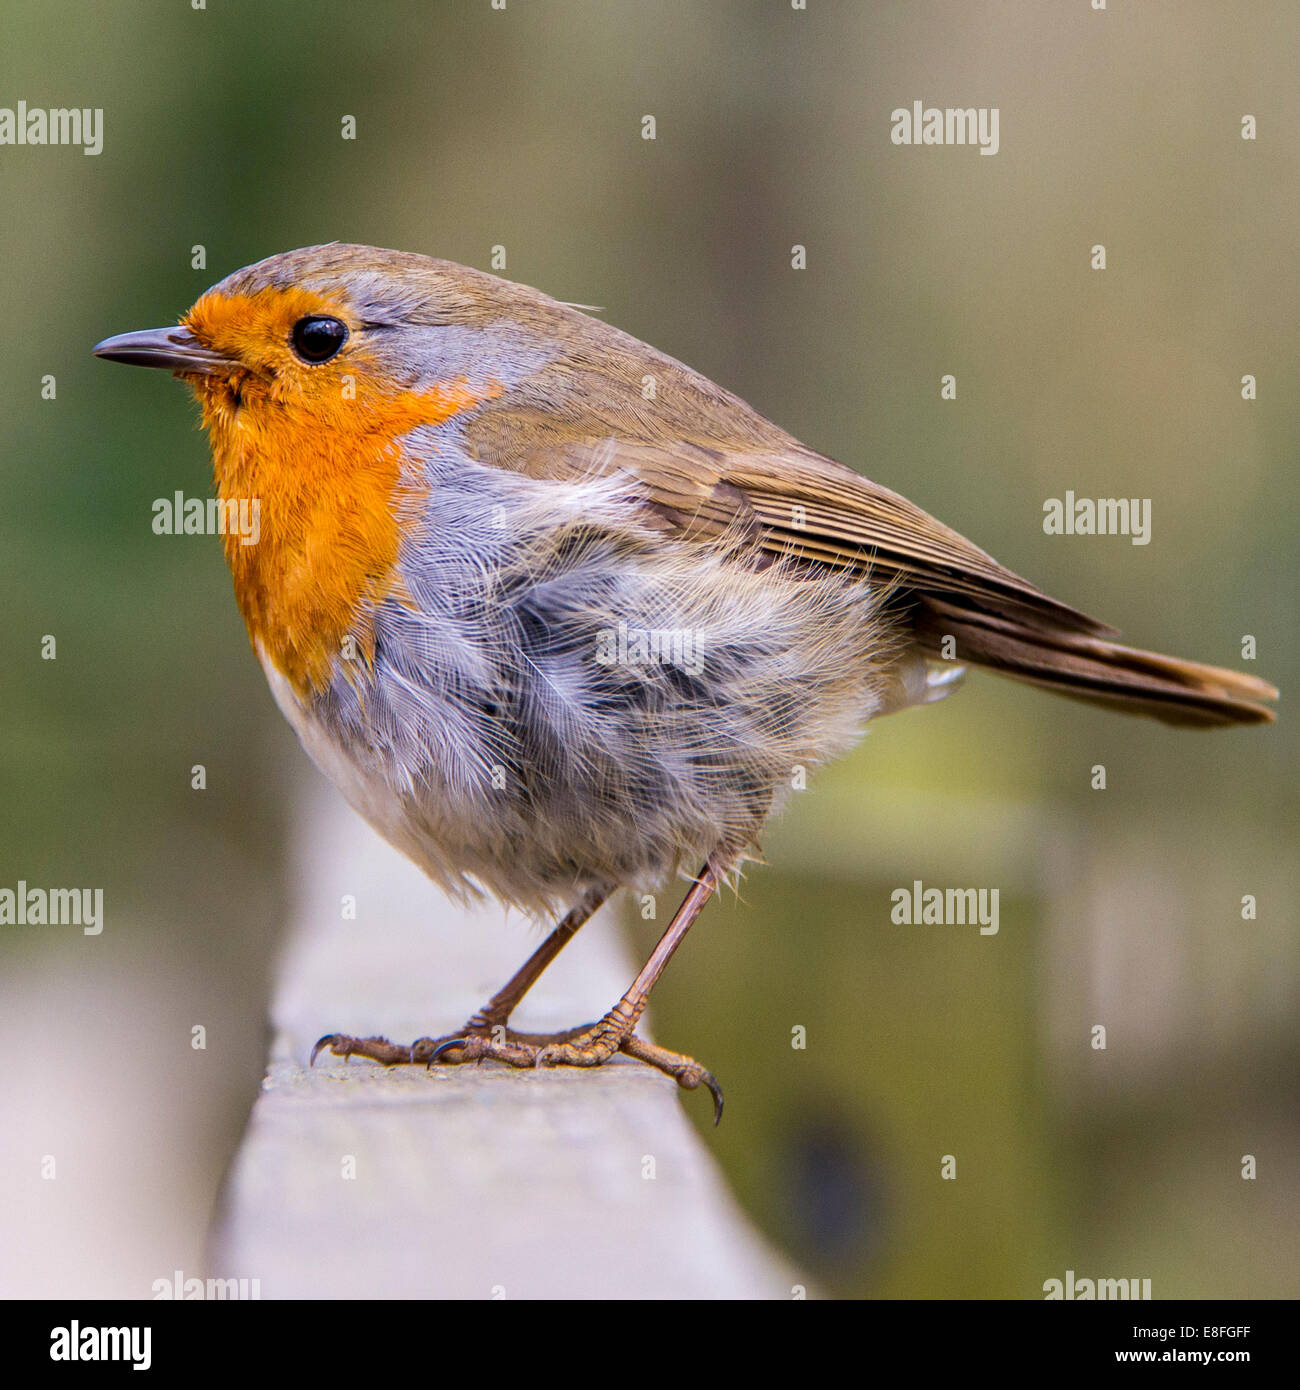 close up of red robin bird sitting on fence stock photo 74100979